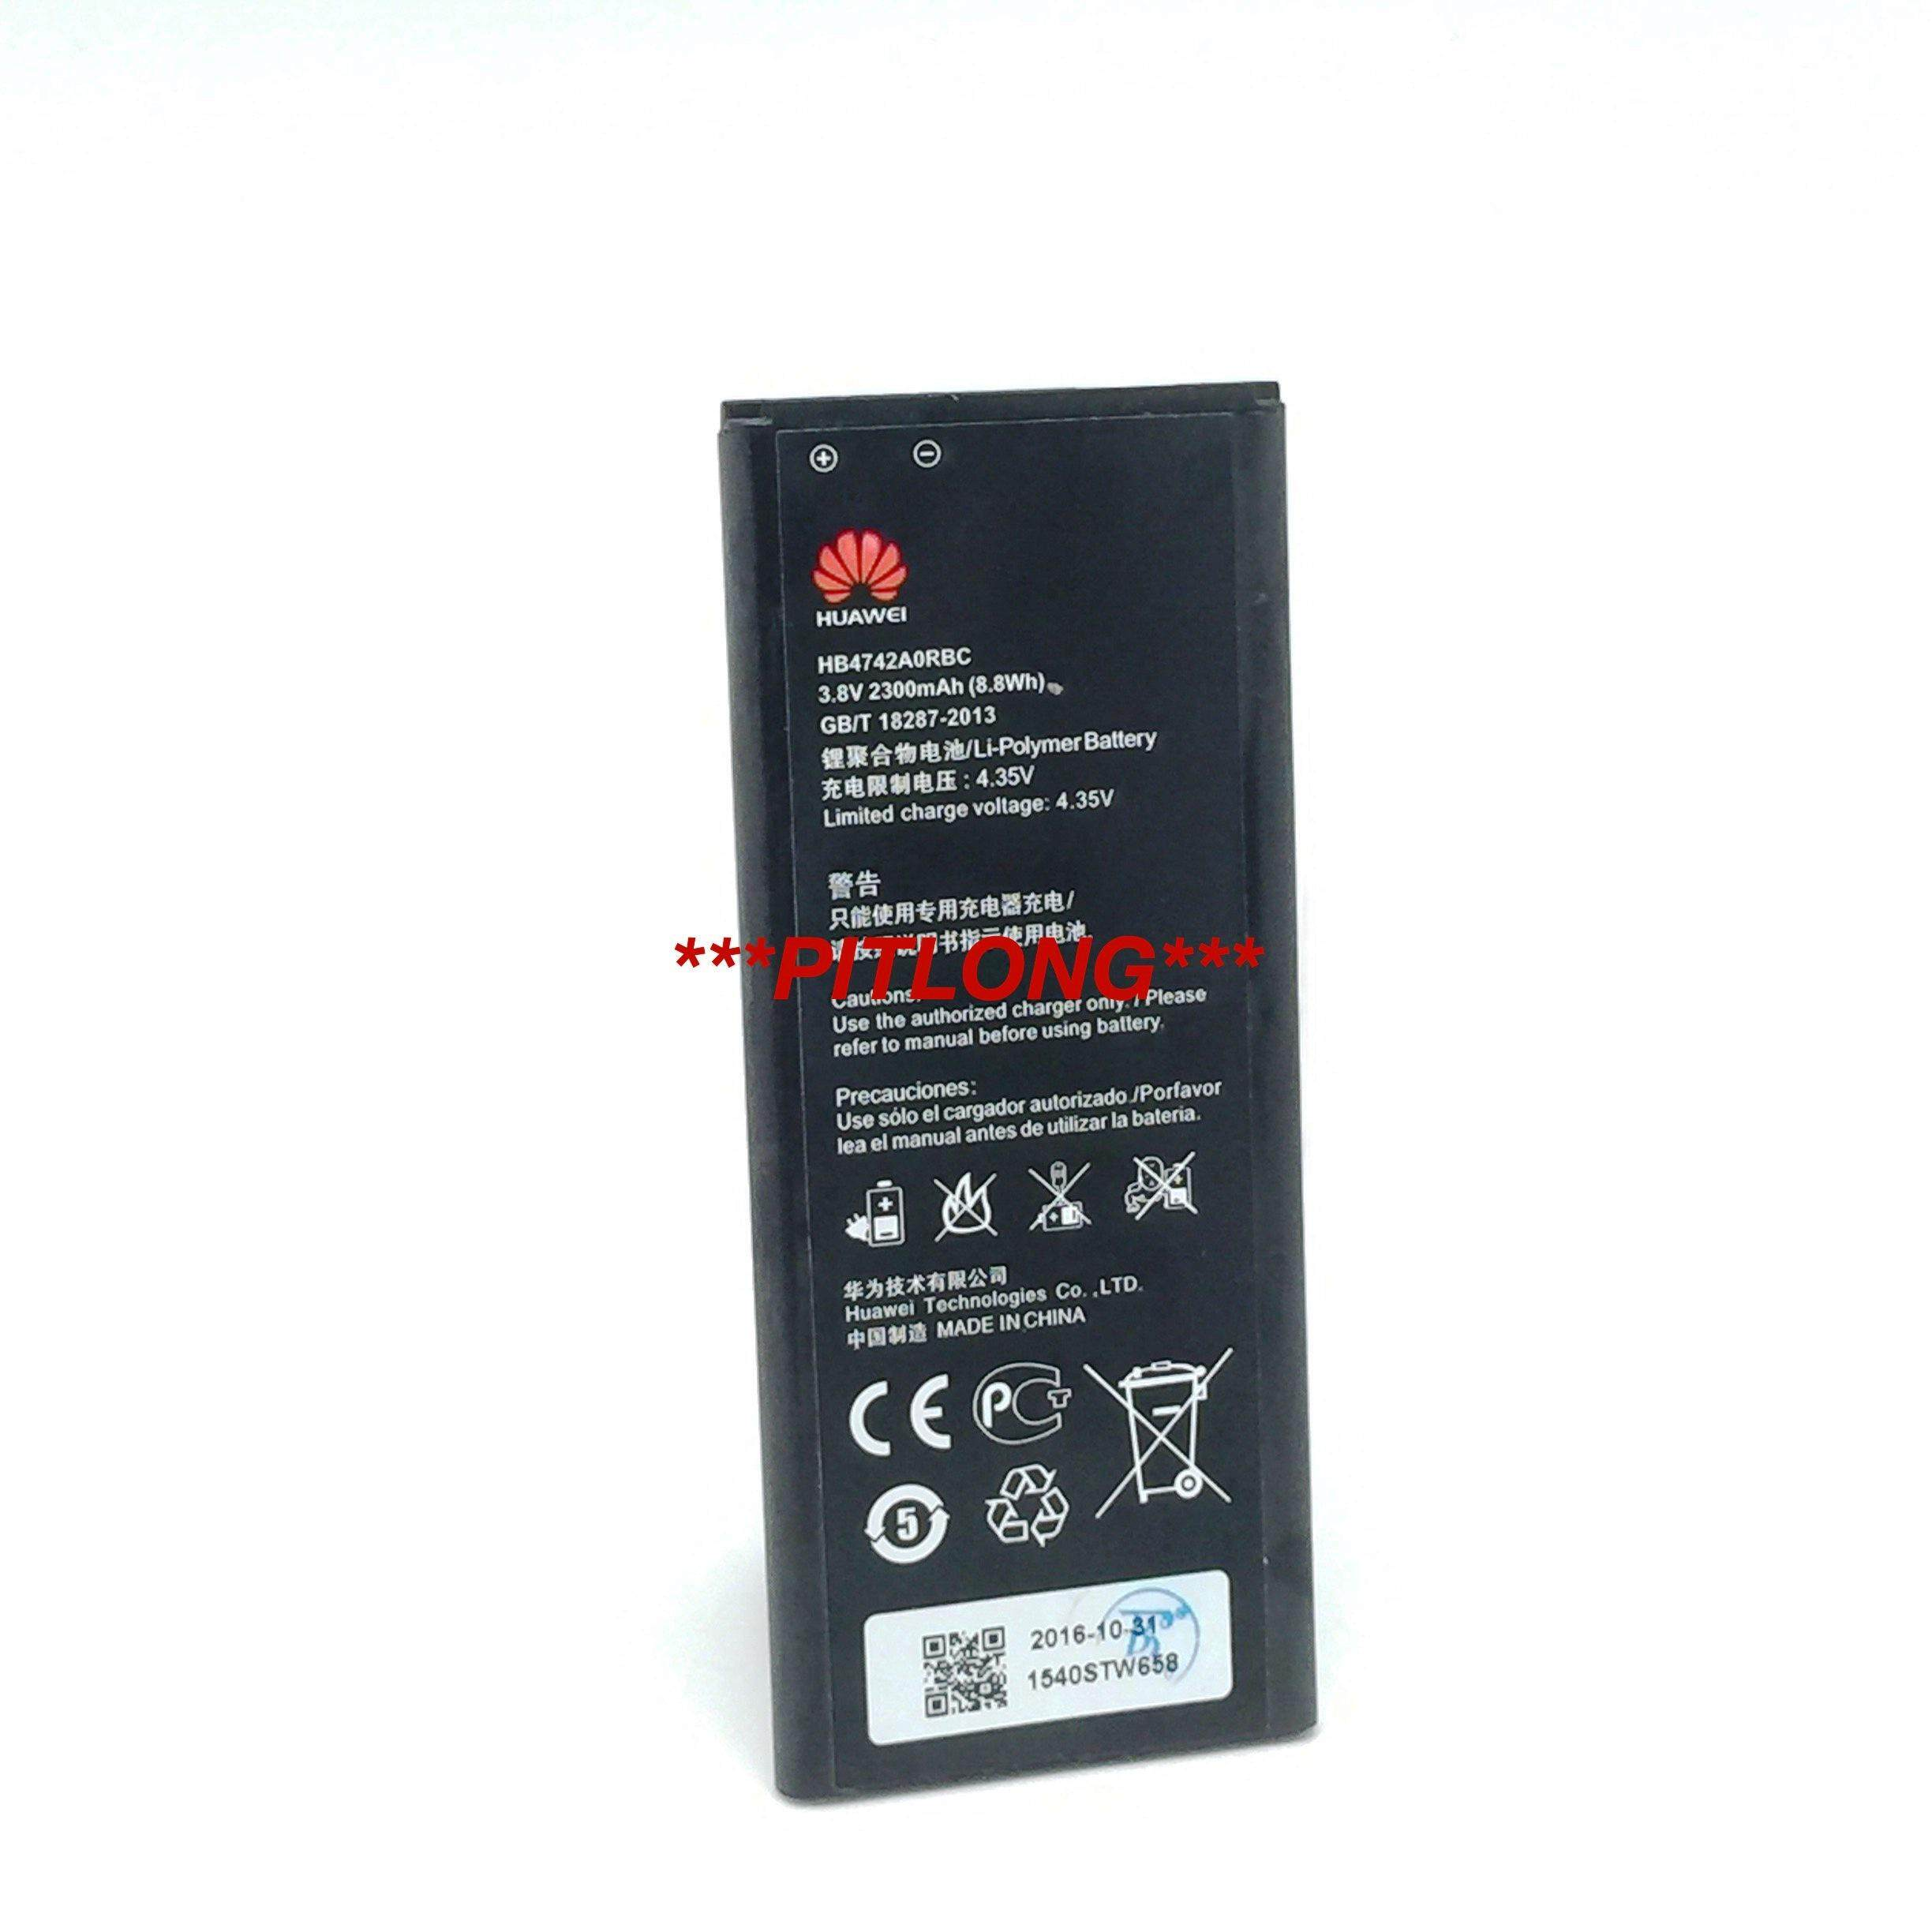 Batteries Chargers For The Best Prices In Malaysia Charger Desktop Lf Huawei Honor 3c Hb4742aorbc 2300mah High Quality Battery